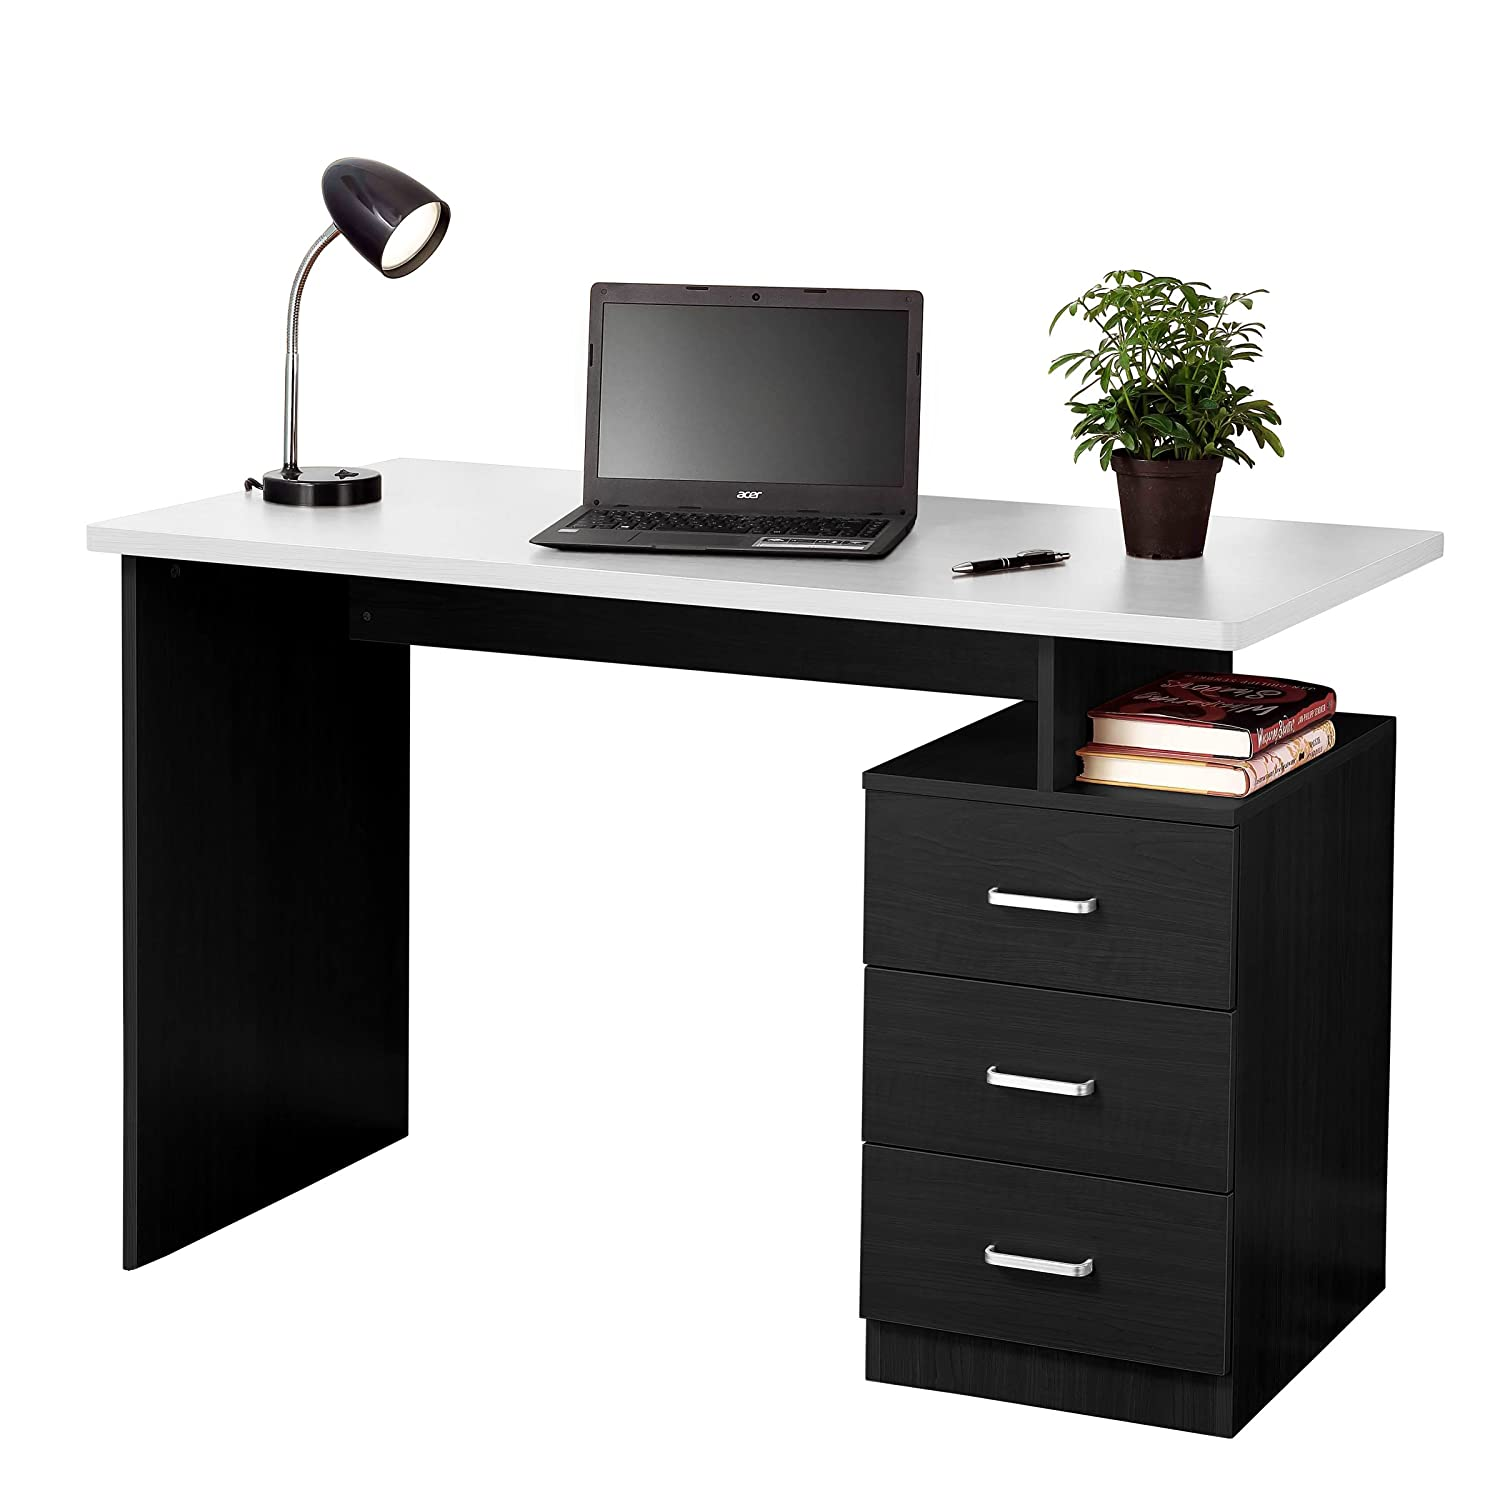 b drawers also print tables desks computer wells along office gh s inspiring upscale off popular home as systems glass with desk inter v pe